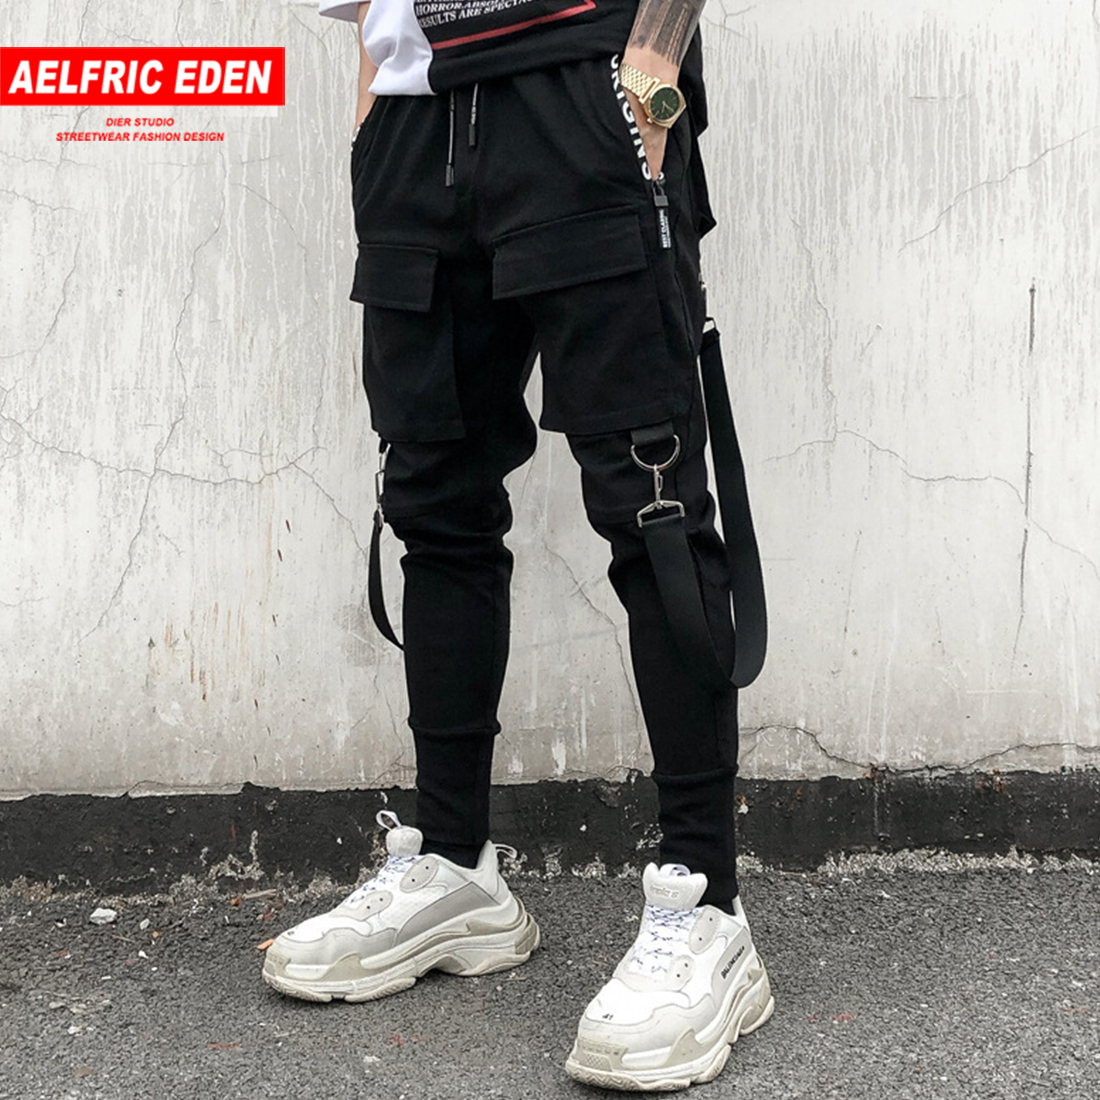 Aelfric Eden 2019 Men's Fashion Personality Slim Elasticity Hip Hop Pants Multi Pocket Haran Joggers Tootsies Singer Costumes